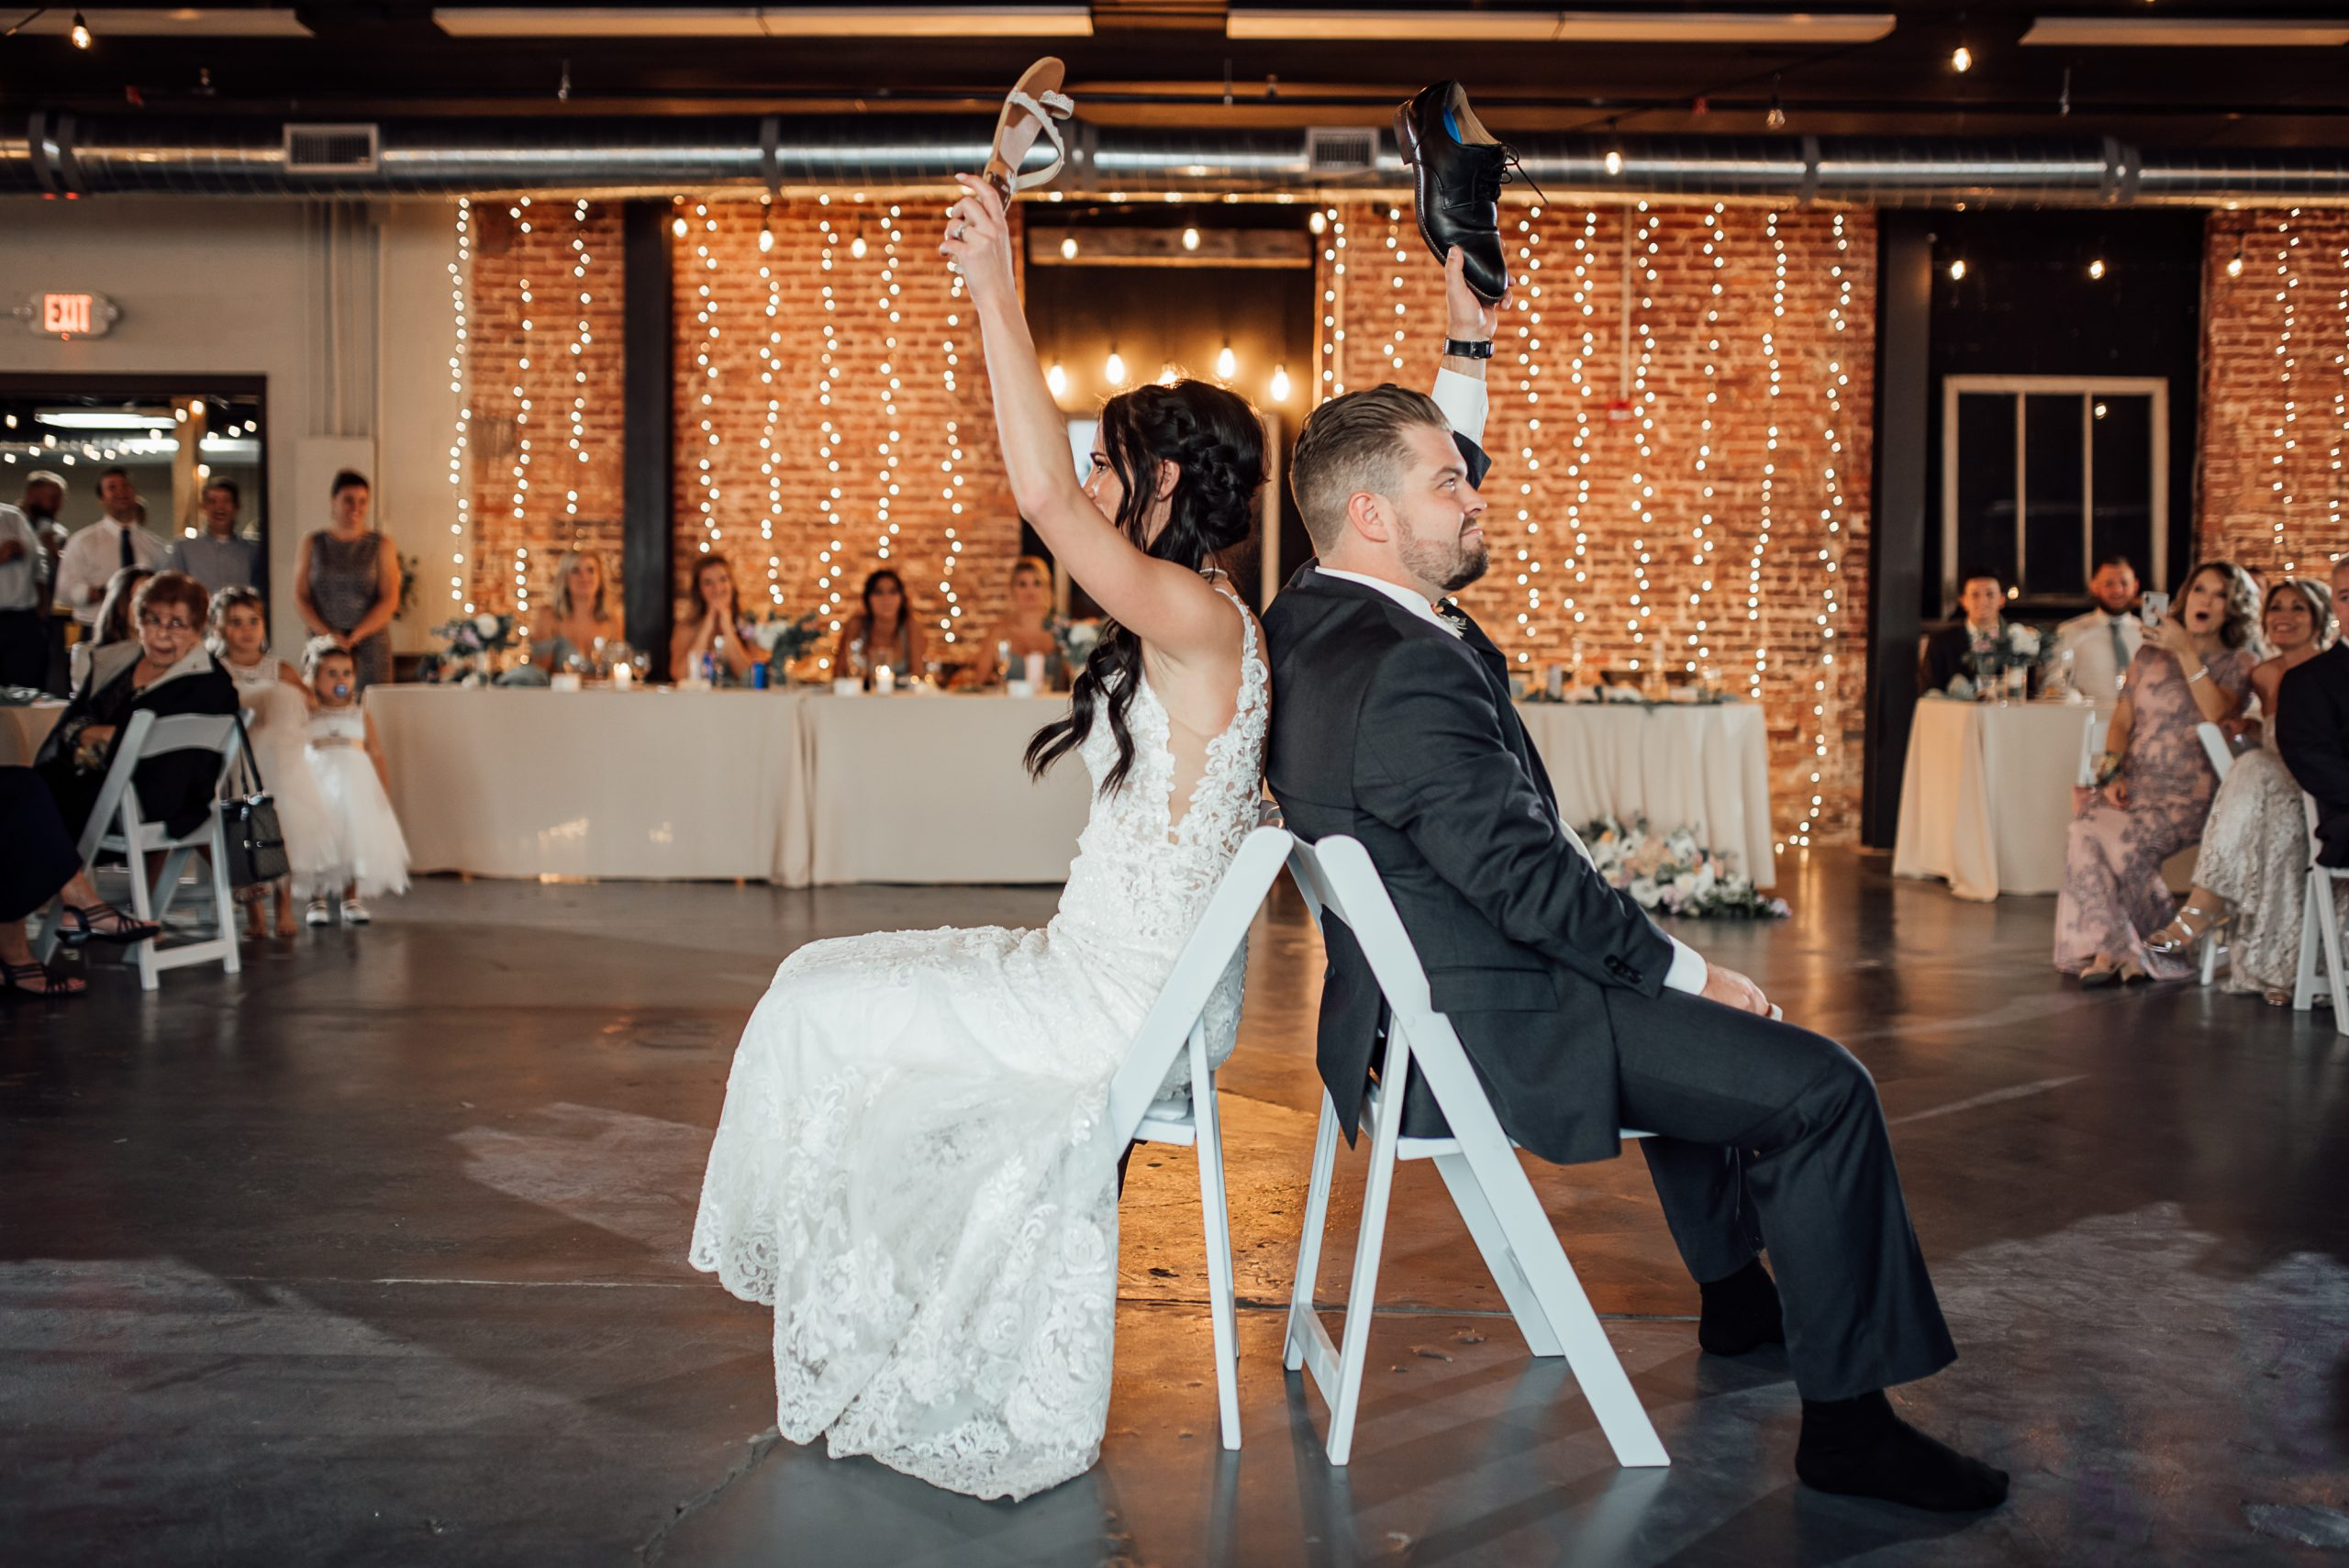 Bride and groom playing games on the dance floor at The Venues Toledo.